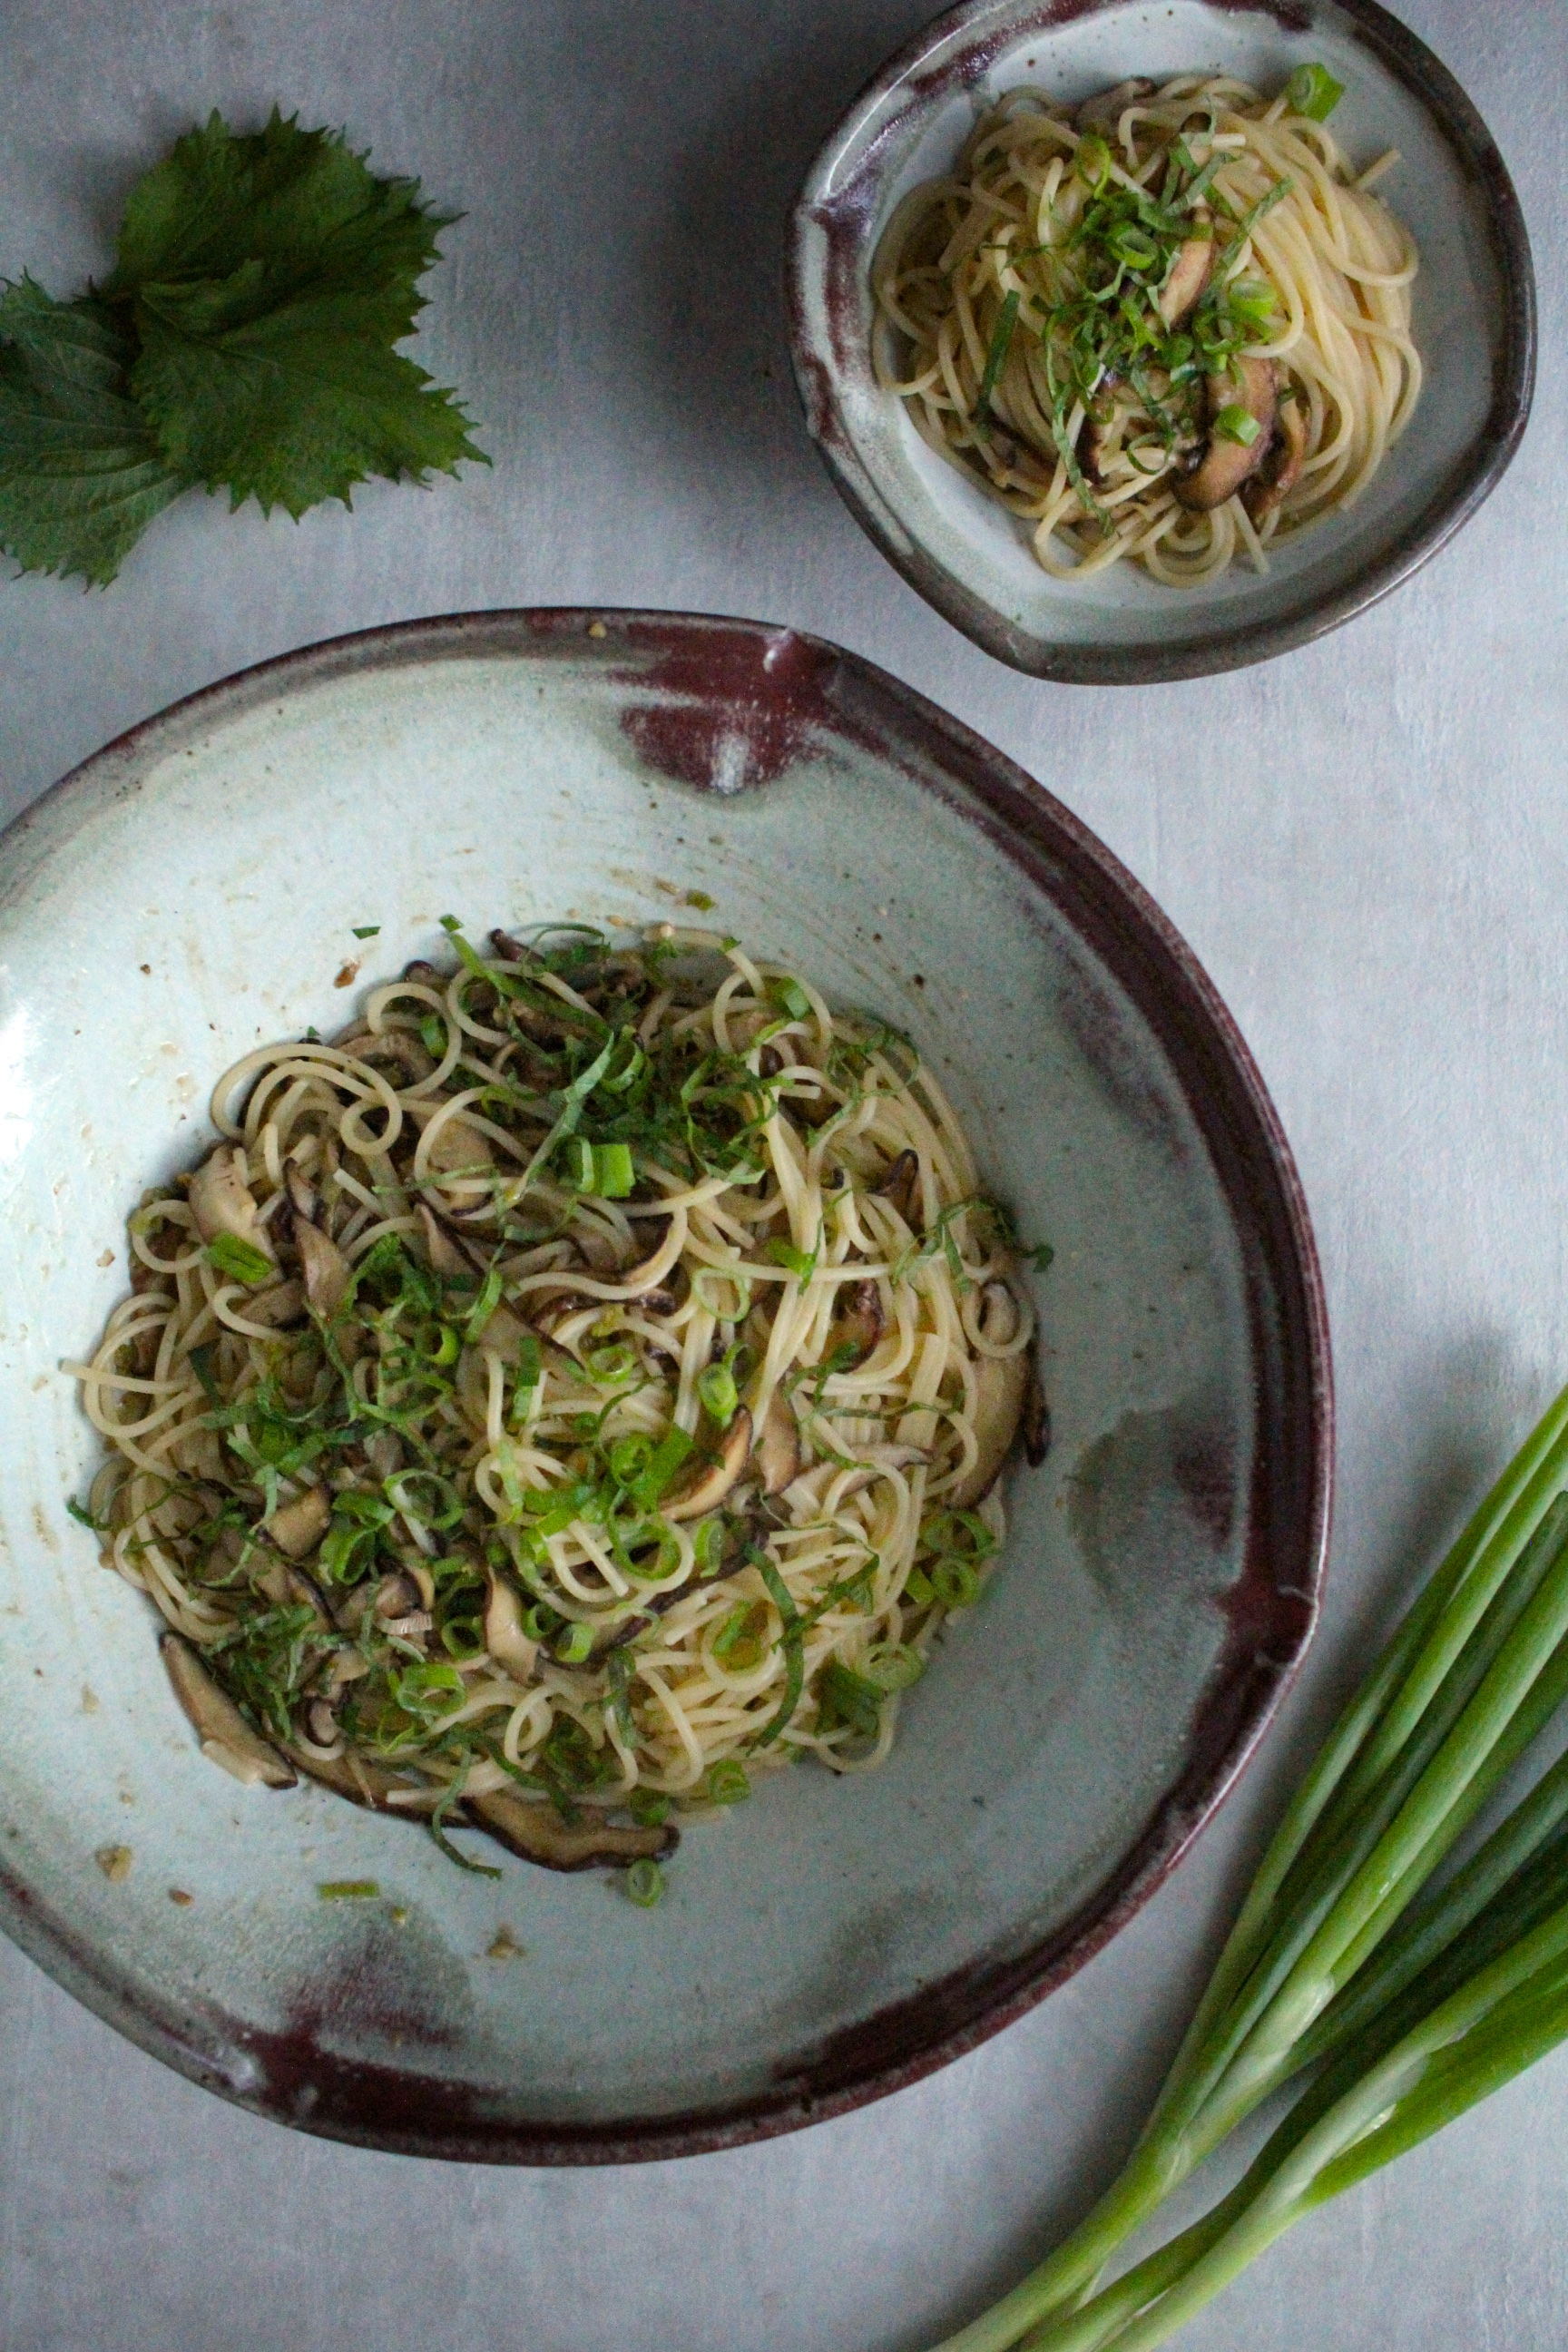 Miso-Butter and Shiitake Pasta